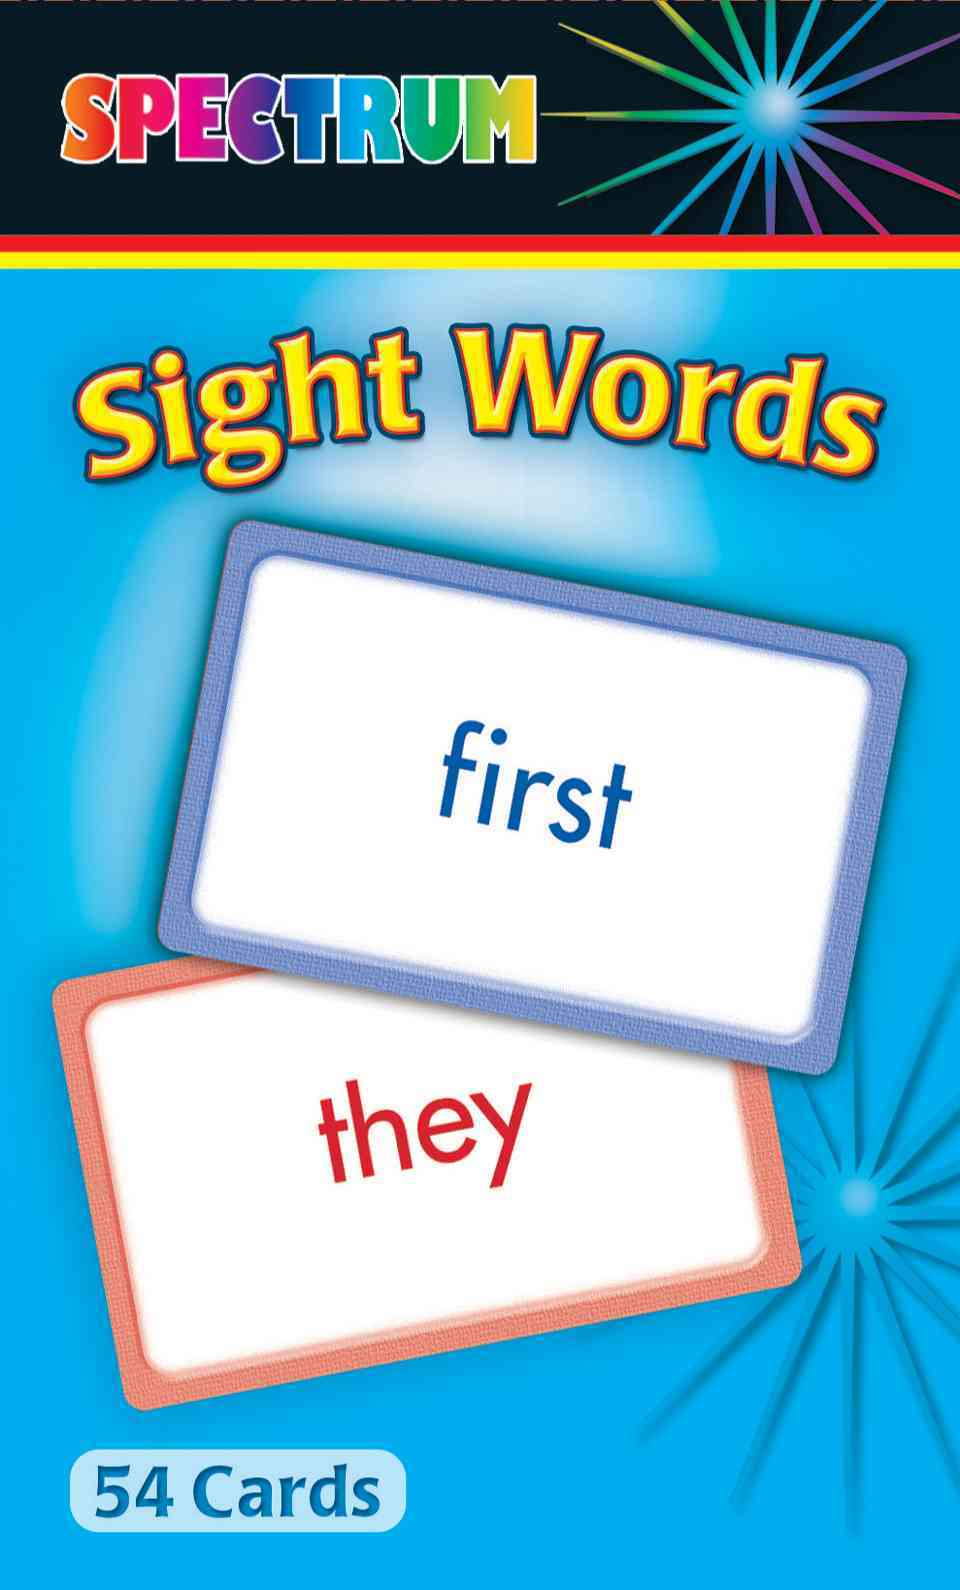 Spectrum Sight Words (Cards)